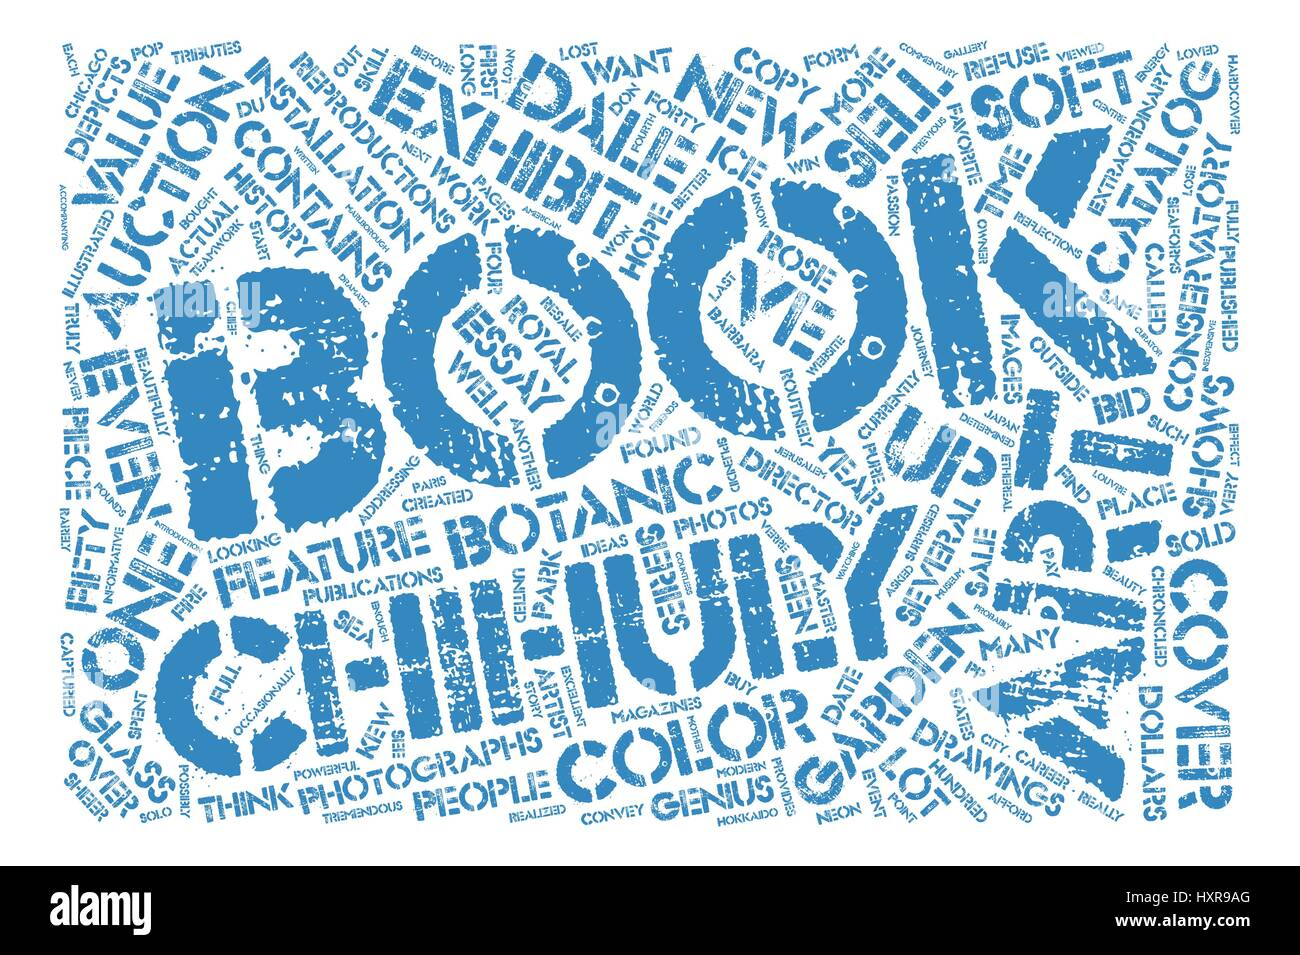 books about dale chihuly text background word cloud concept stock image